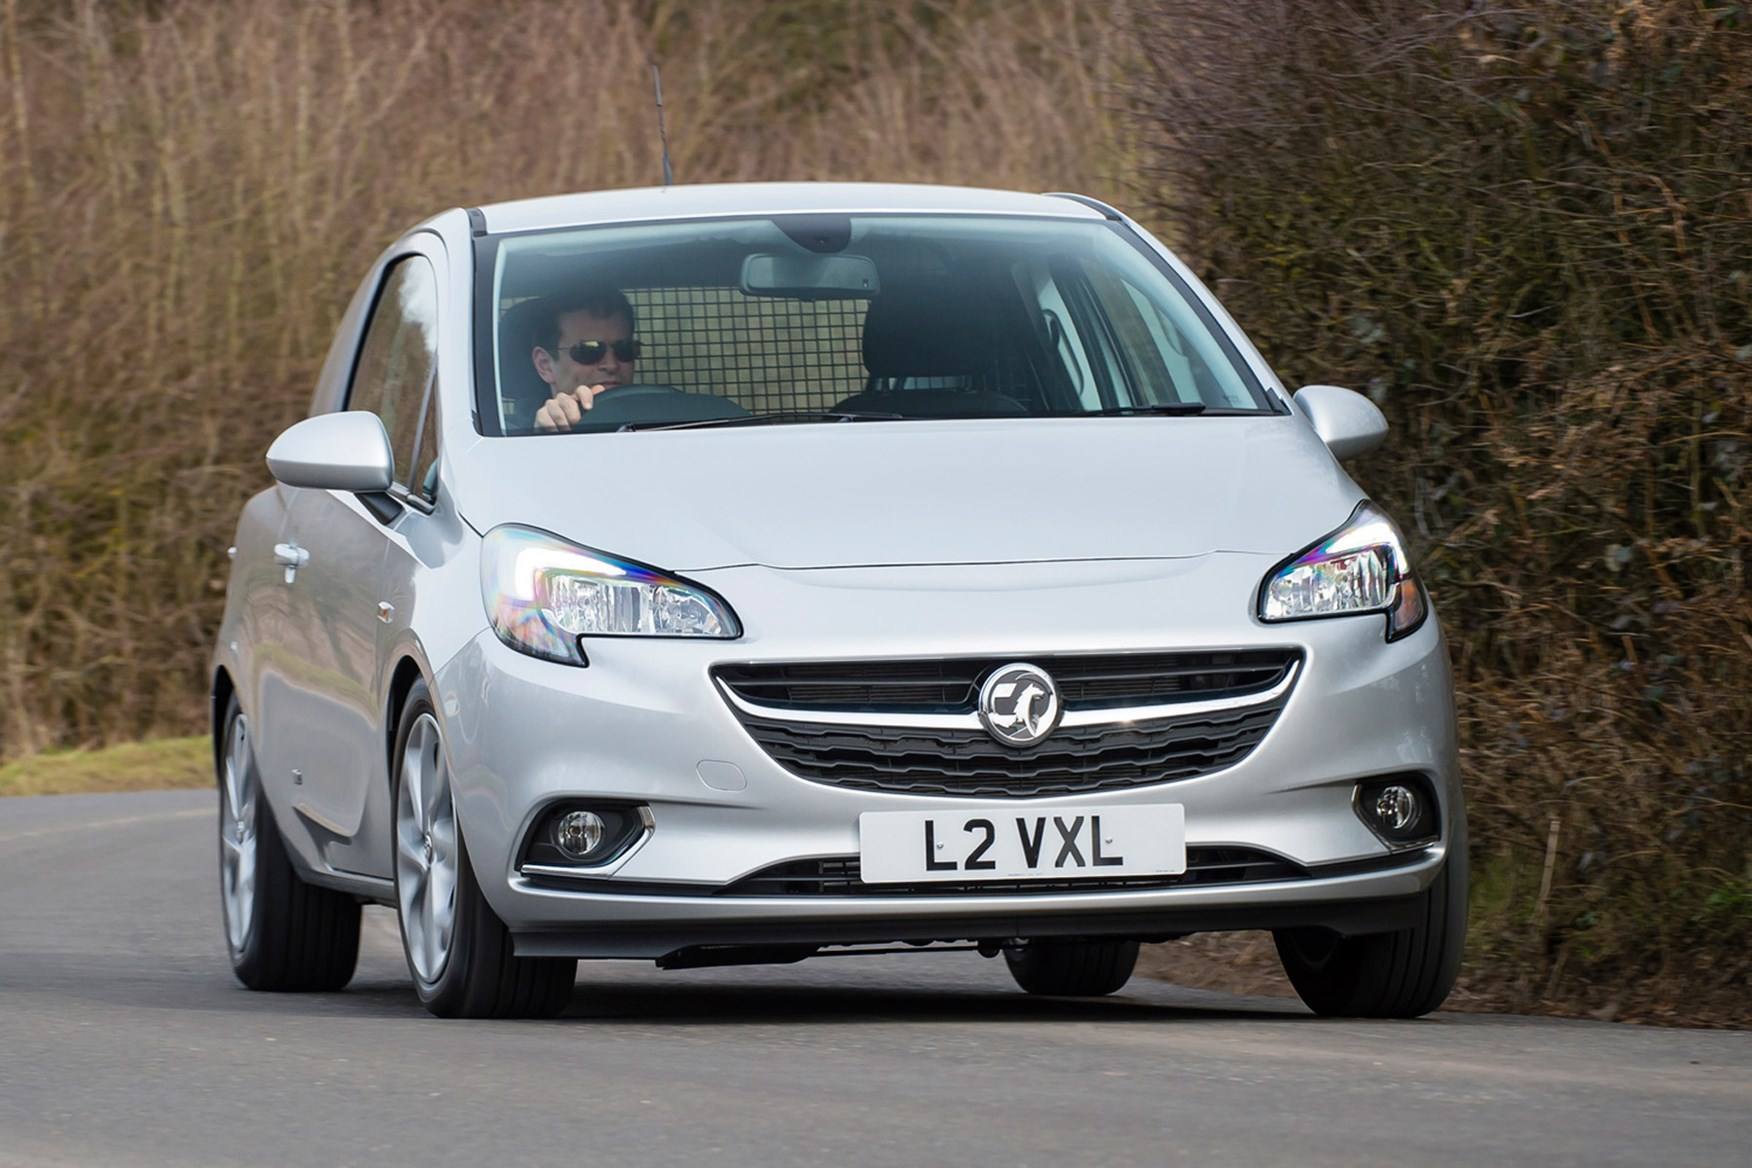 Vauxhall Corsa full review on Parkers Vans - front exterior